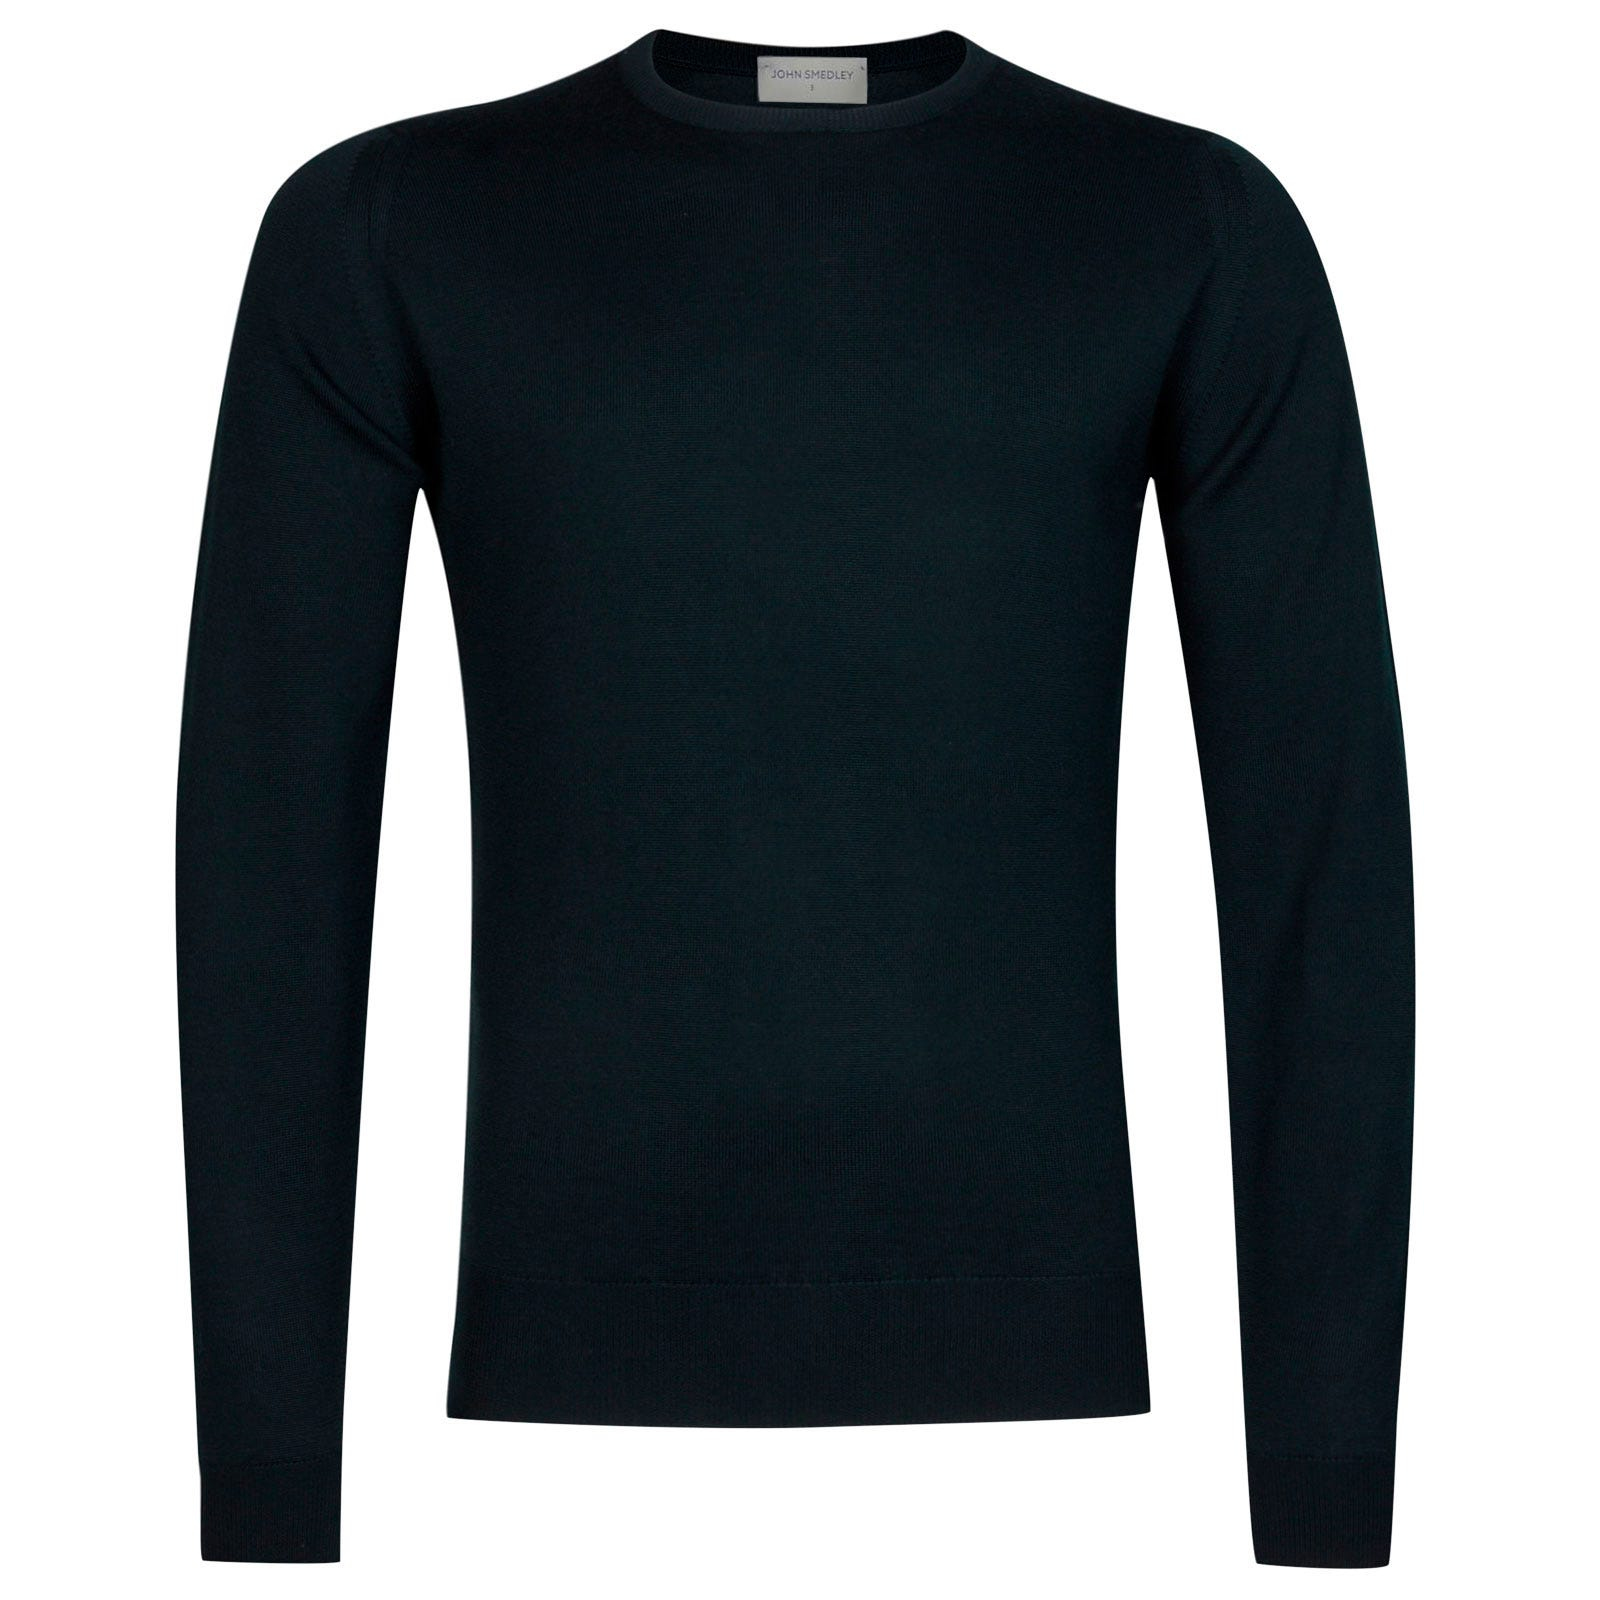 John Smedley farhill Merino Wool Pullover in Racing Green-M